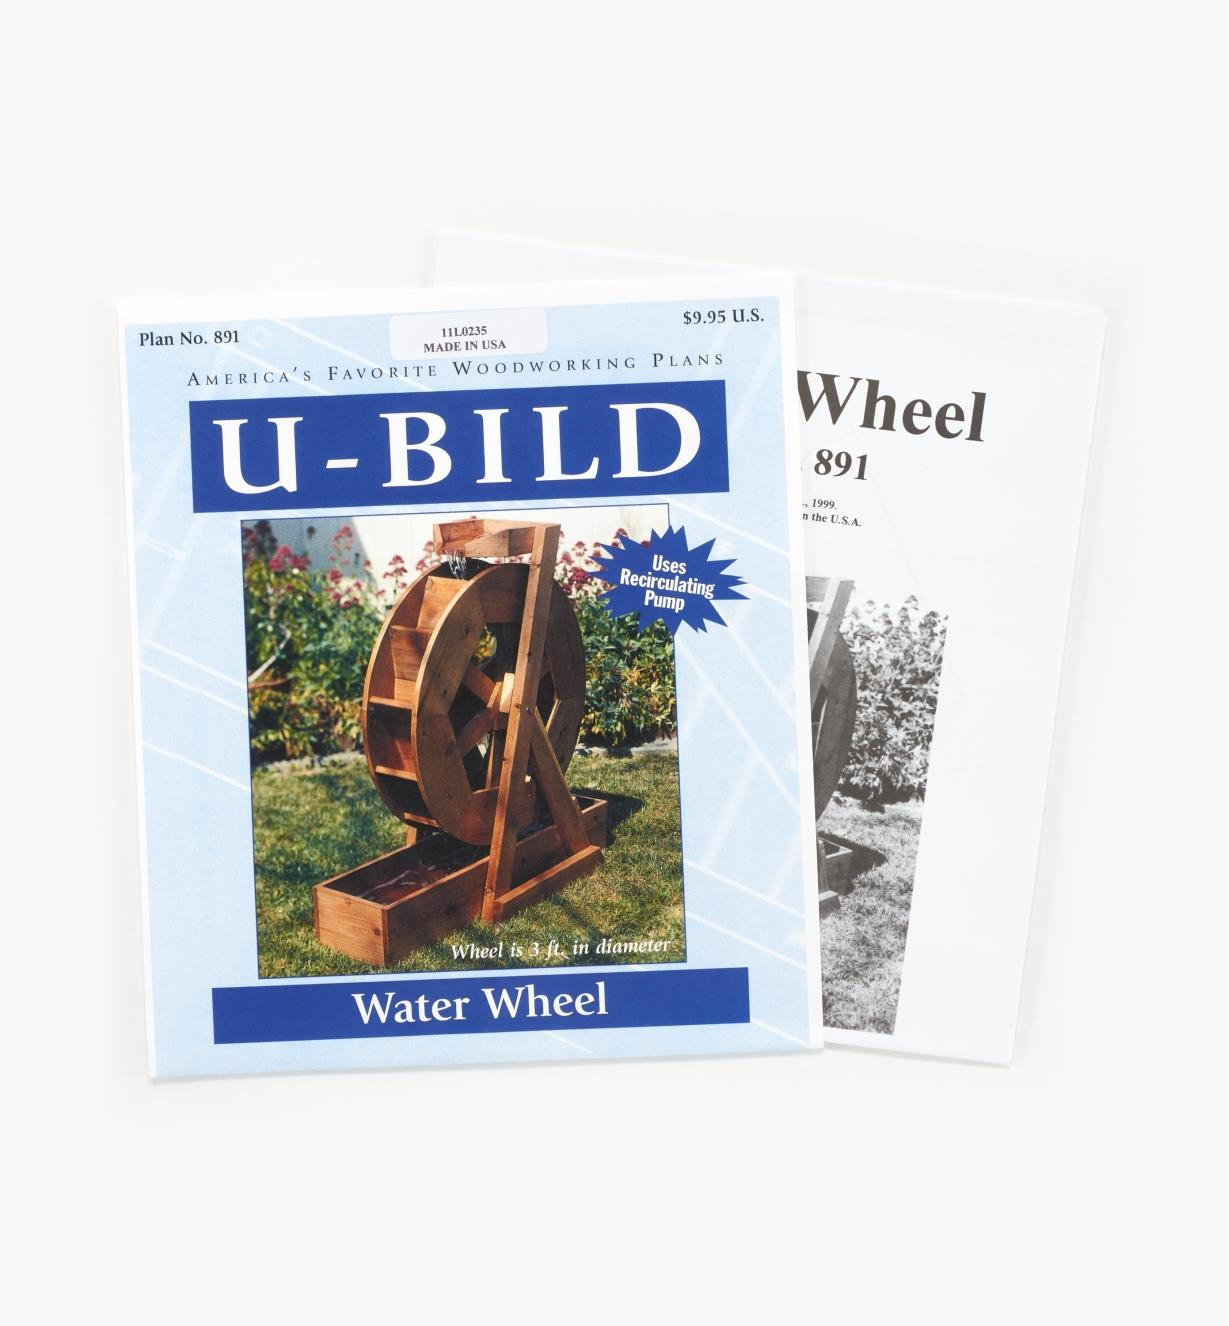 11L0235 - Water Wheel Plan